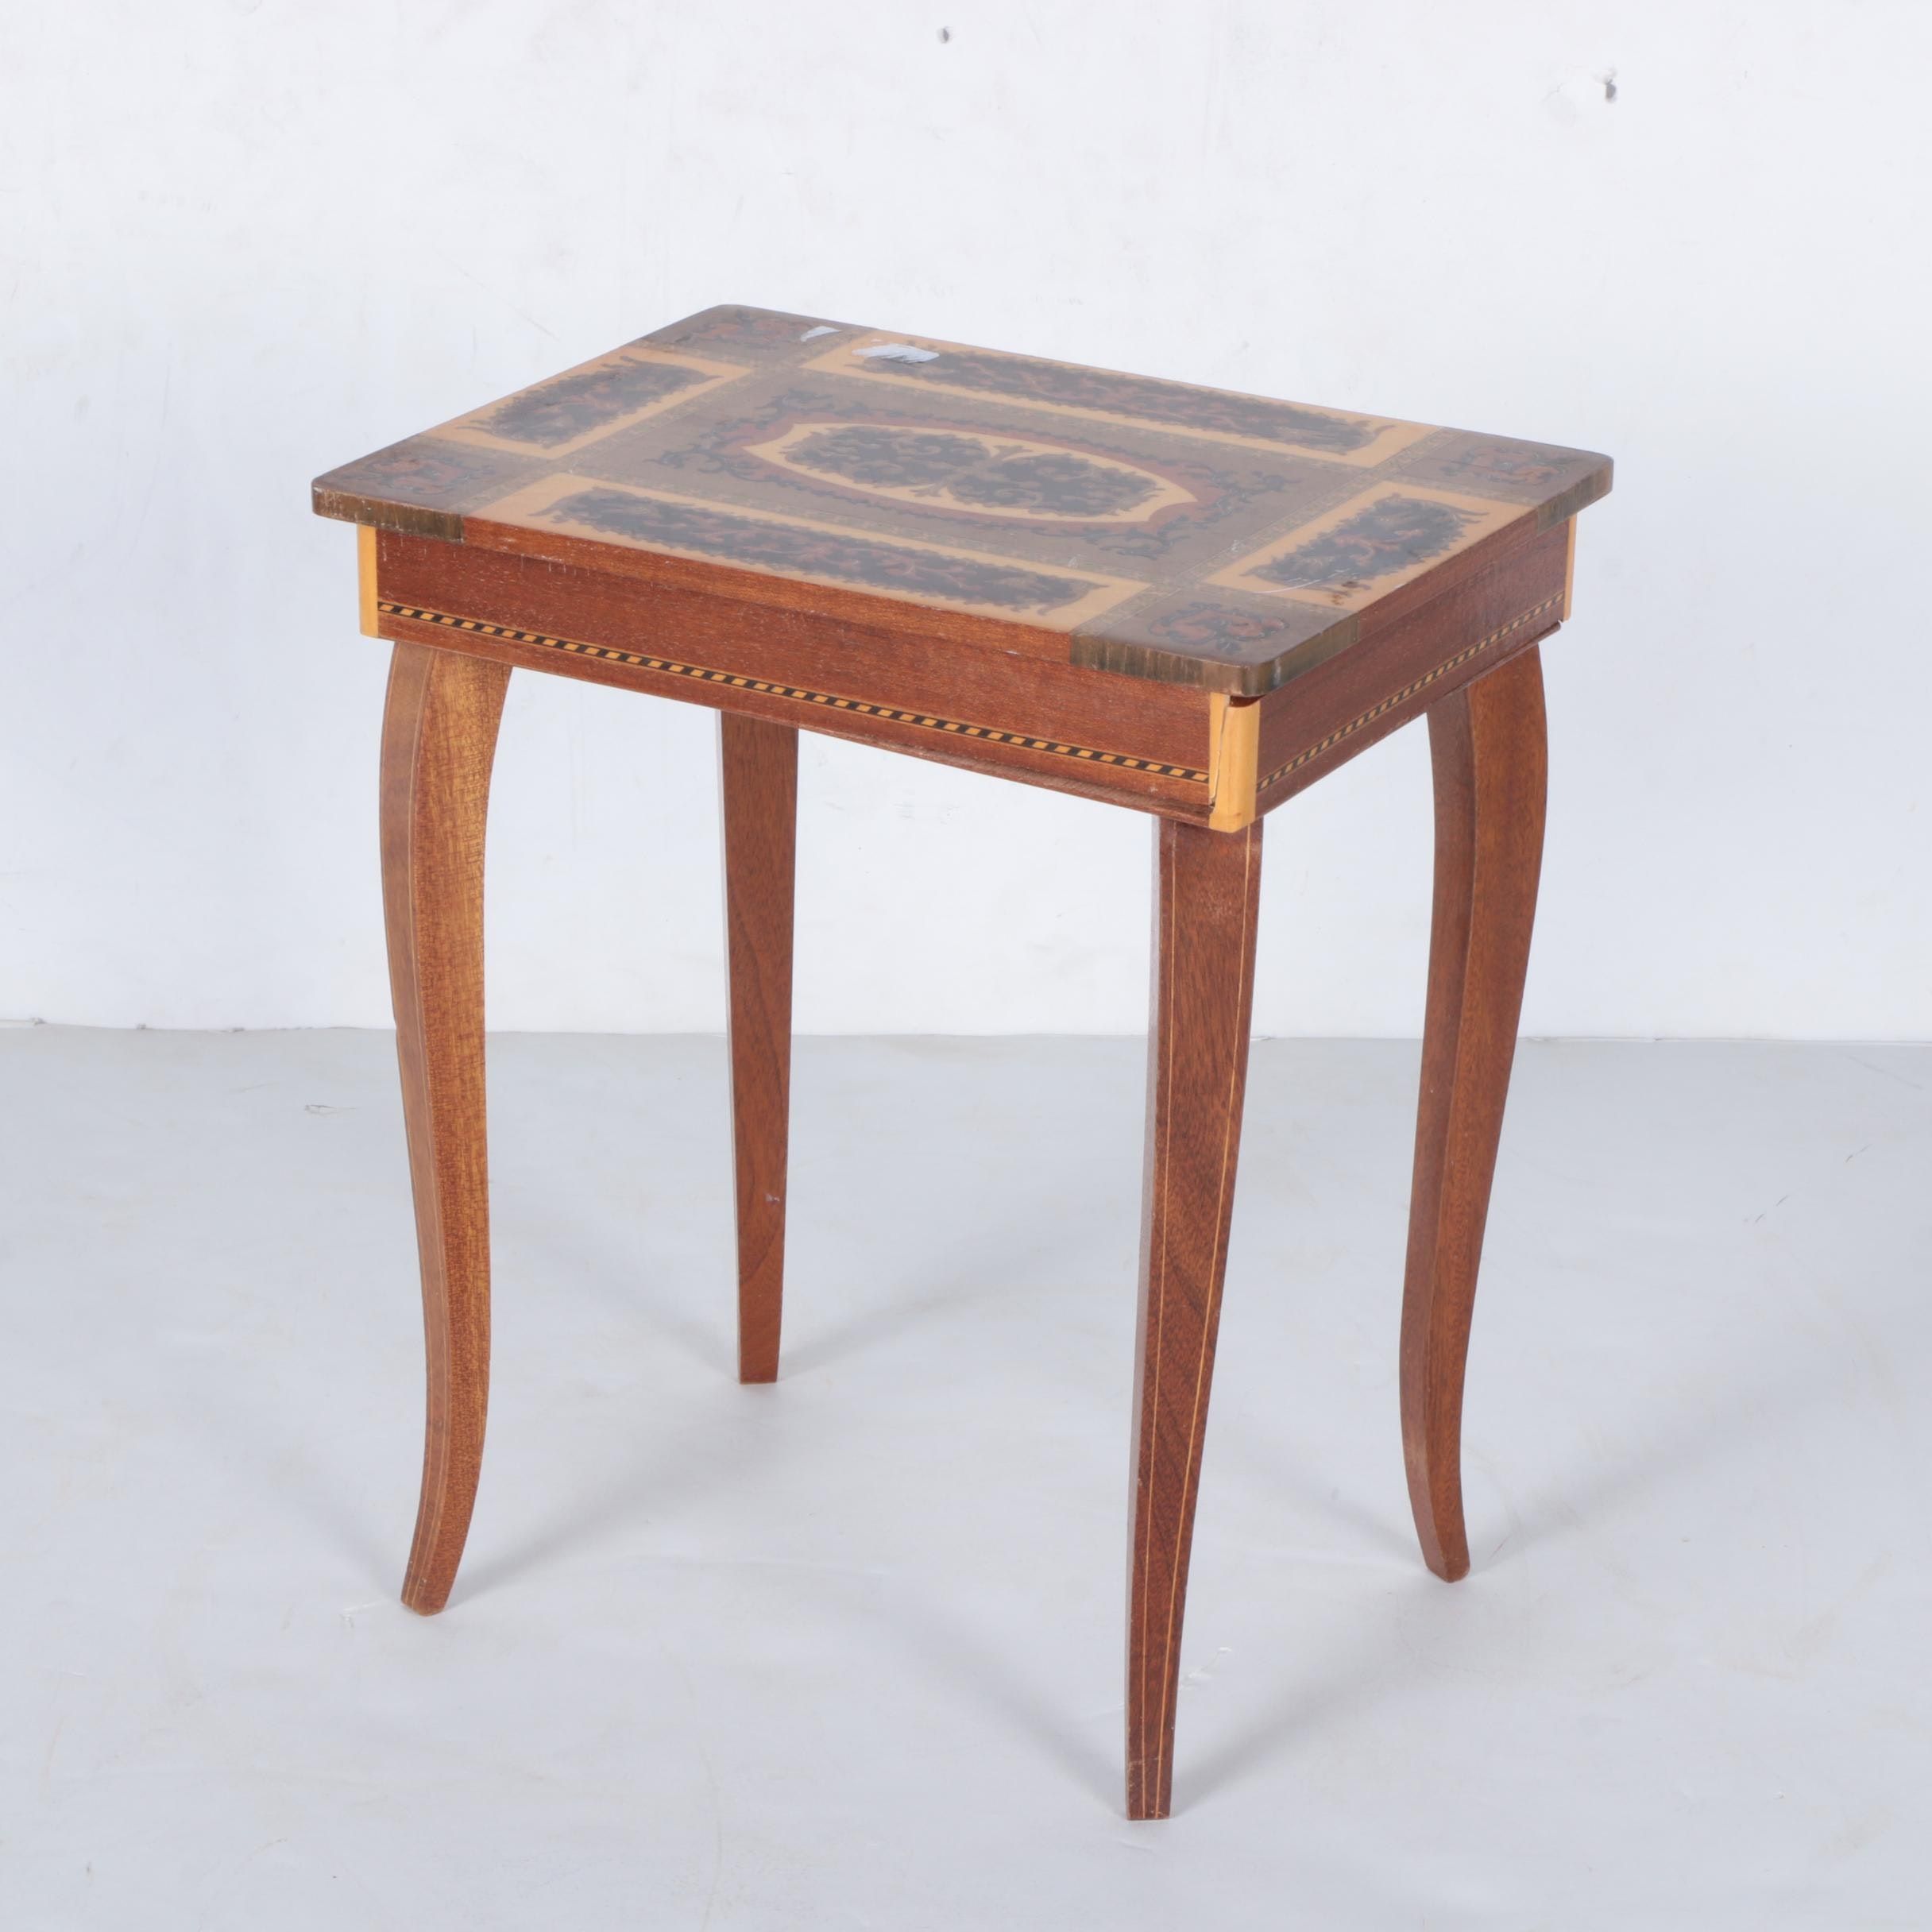 Vintage Inlaid Mahogany Reuge Jewelry Box Table